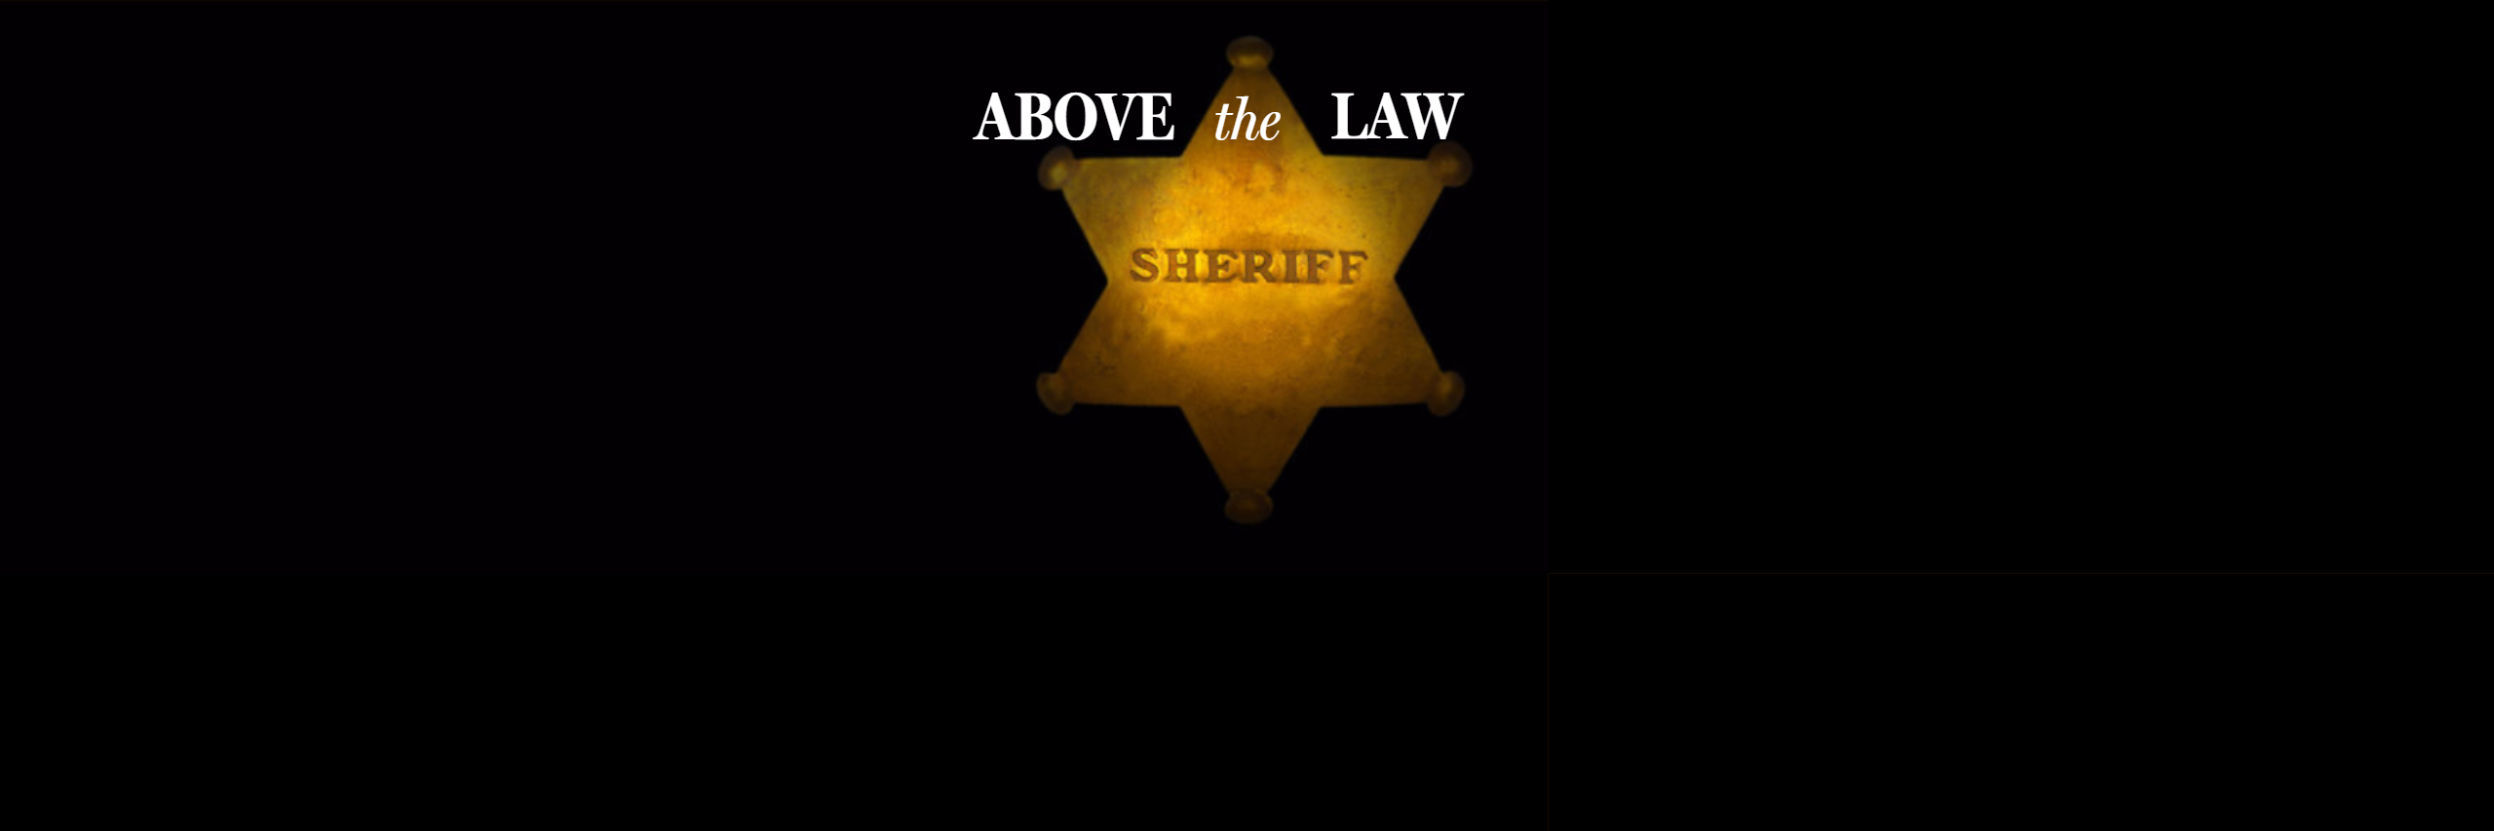 above the law footer